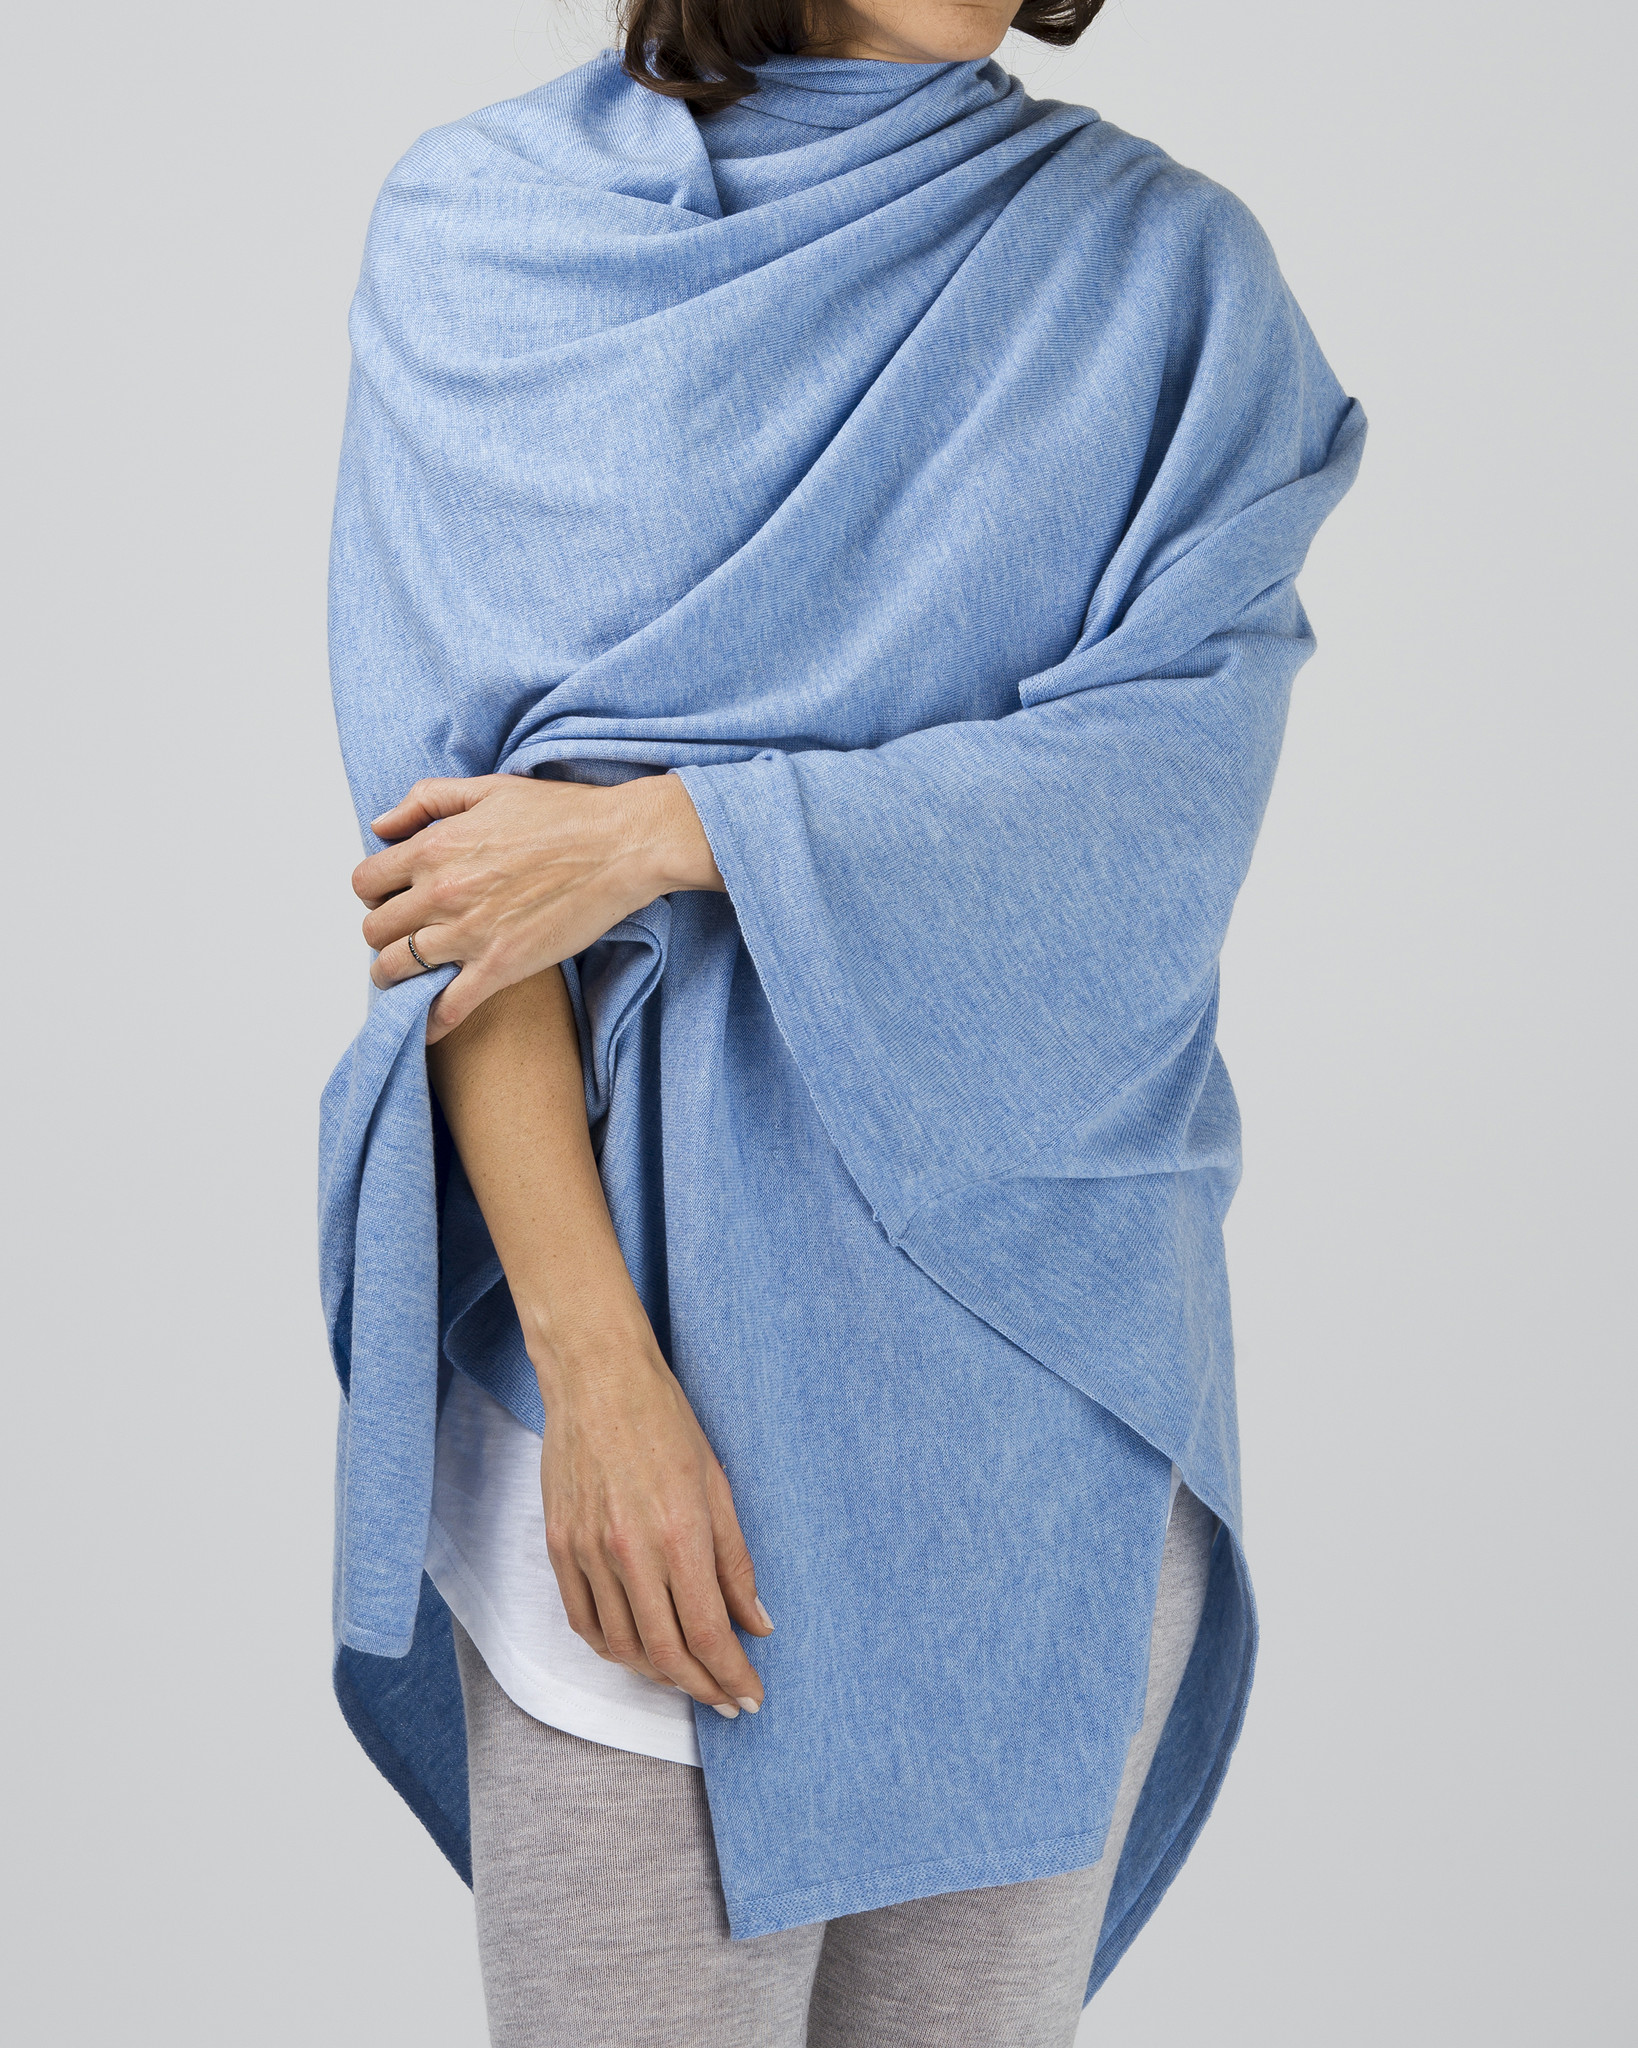 Merino 100% Oversized Wrap  $159.00  Available in 3 colours  100% supersoft washed merino. easily our most versatile piece. can work as a full-sized cape, wrapped around and styled, or as an oversized scarf. the ultimate travel companion.